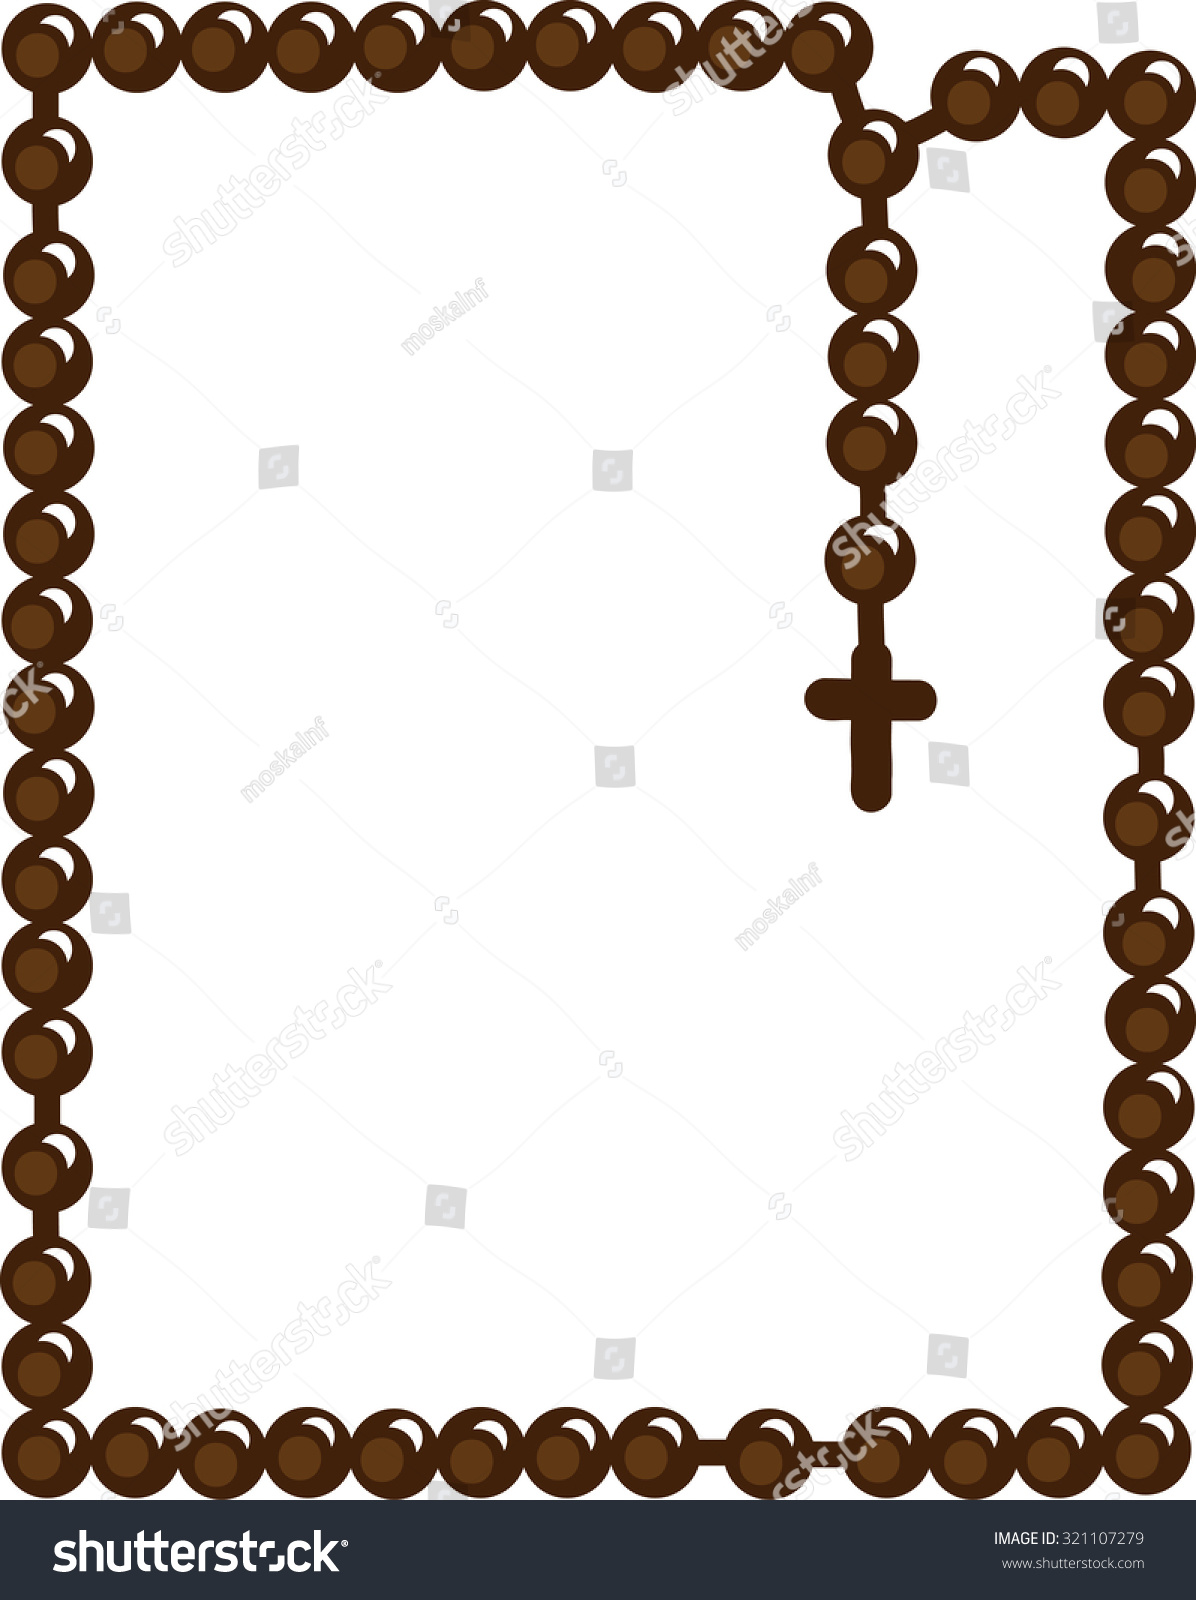 Royalty free holy rosary christian rosary symbol 321107279 vector illustration brown frame with rosary brown wooden catholic rosary beads religious symbols rosary necklace praying symbol stock photo buycottarizona